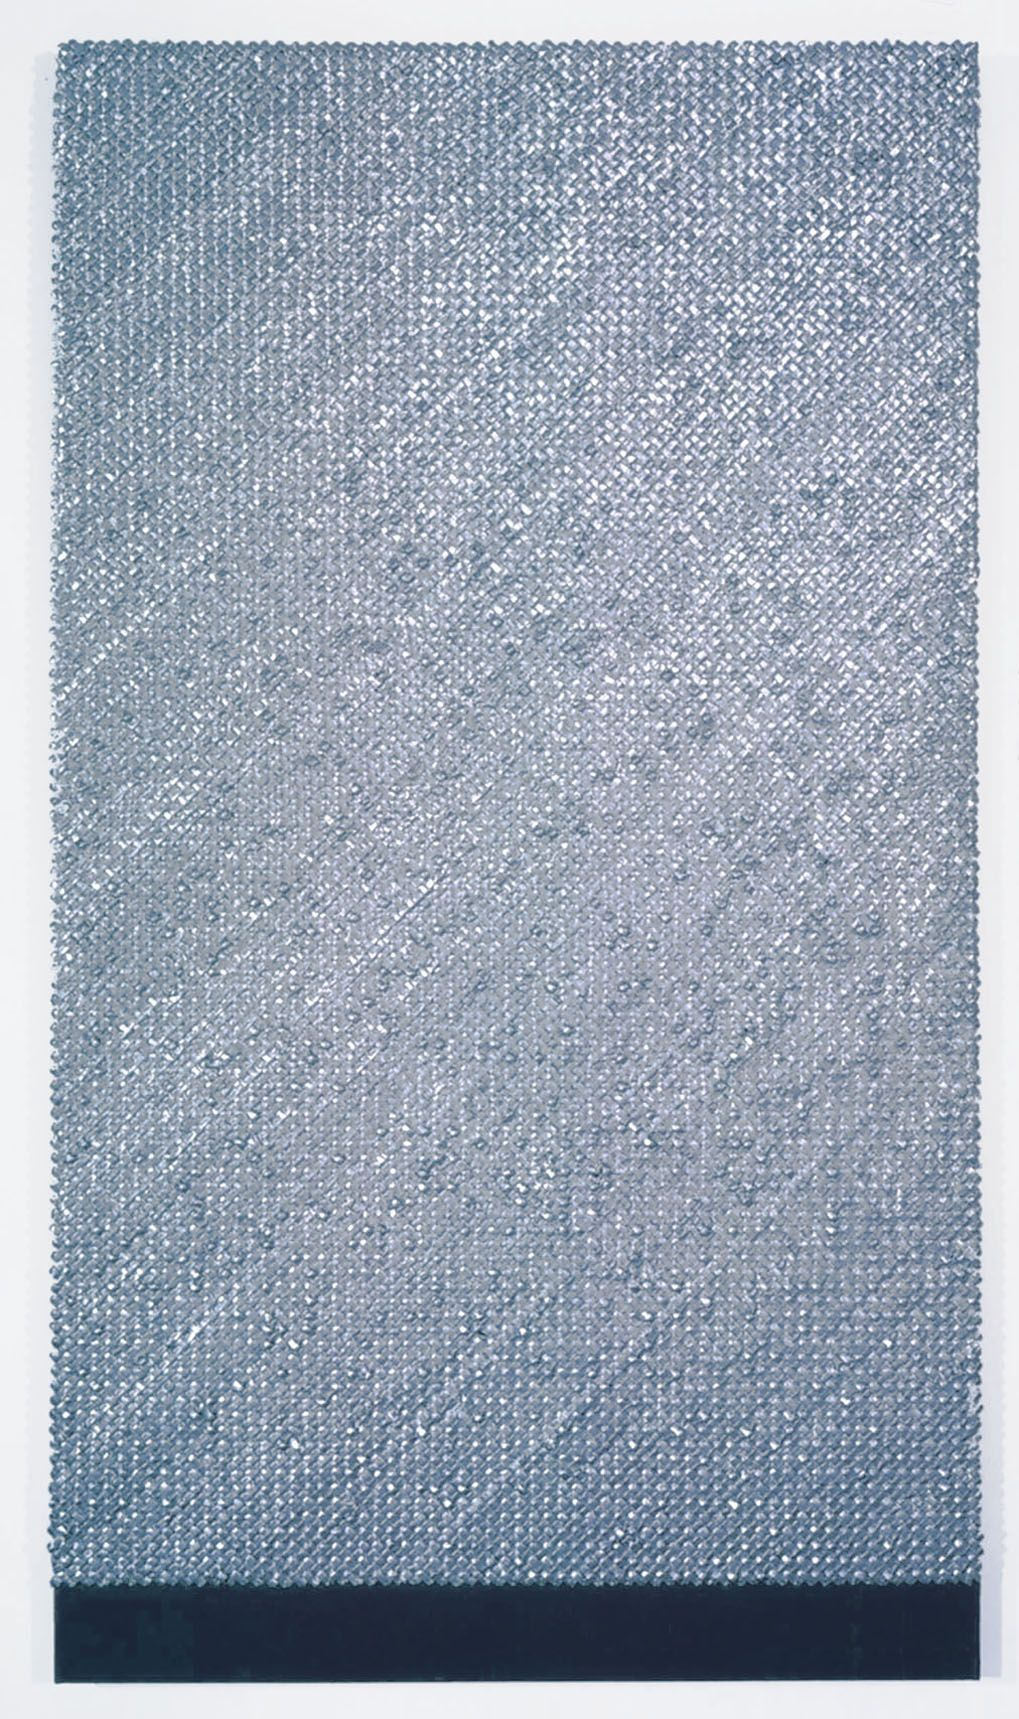 textured grey rectangle by donald moffett